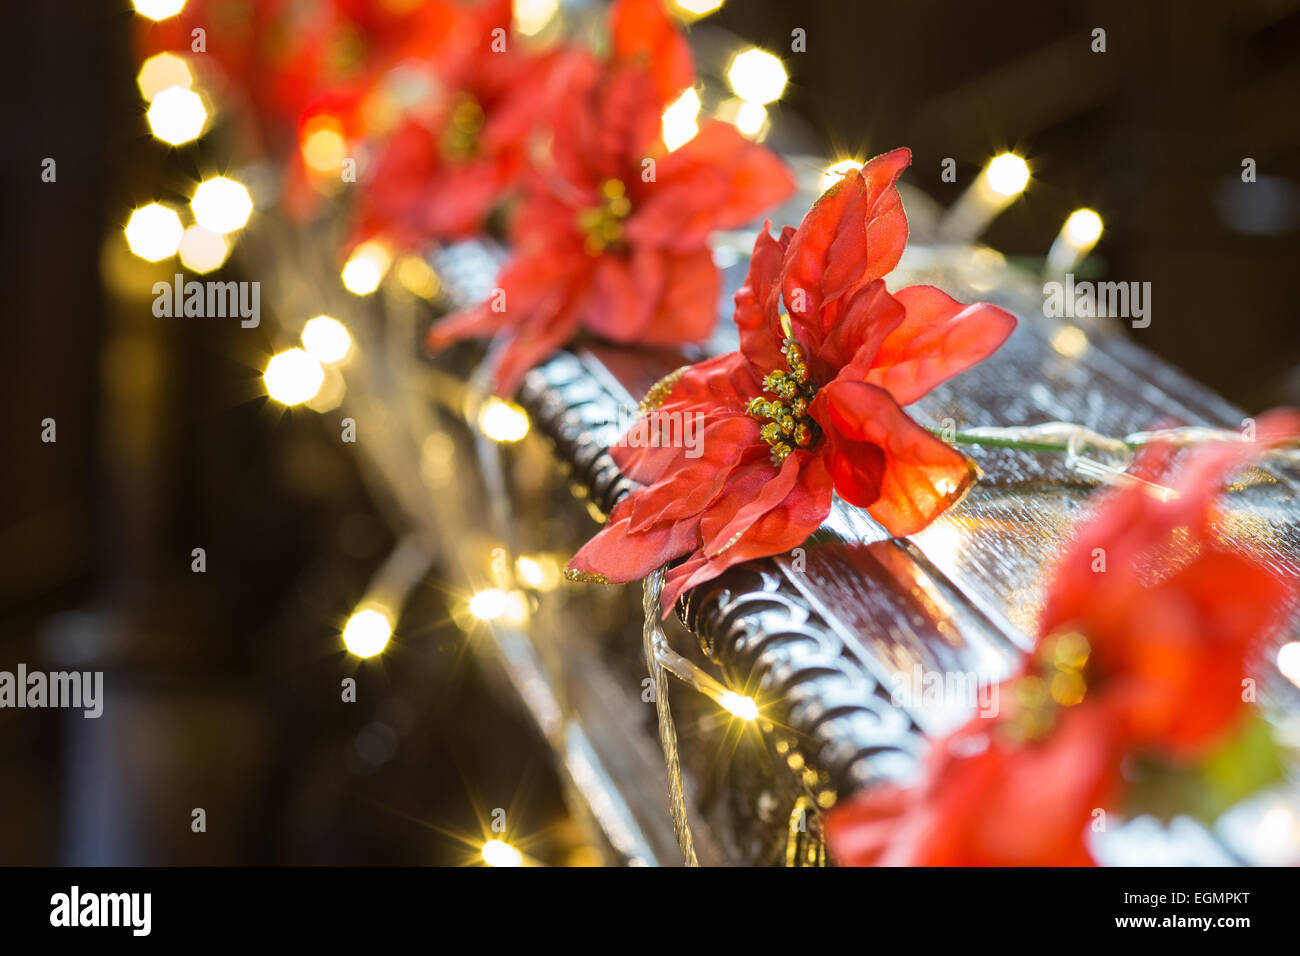 Picture of: Christmas Lights And Decorations On Stair Banister Stock Photo Alamy